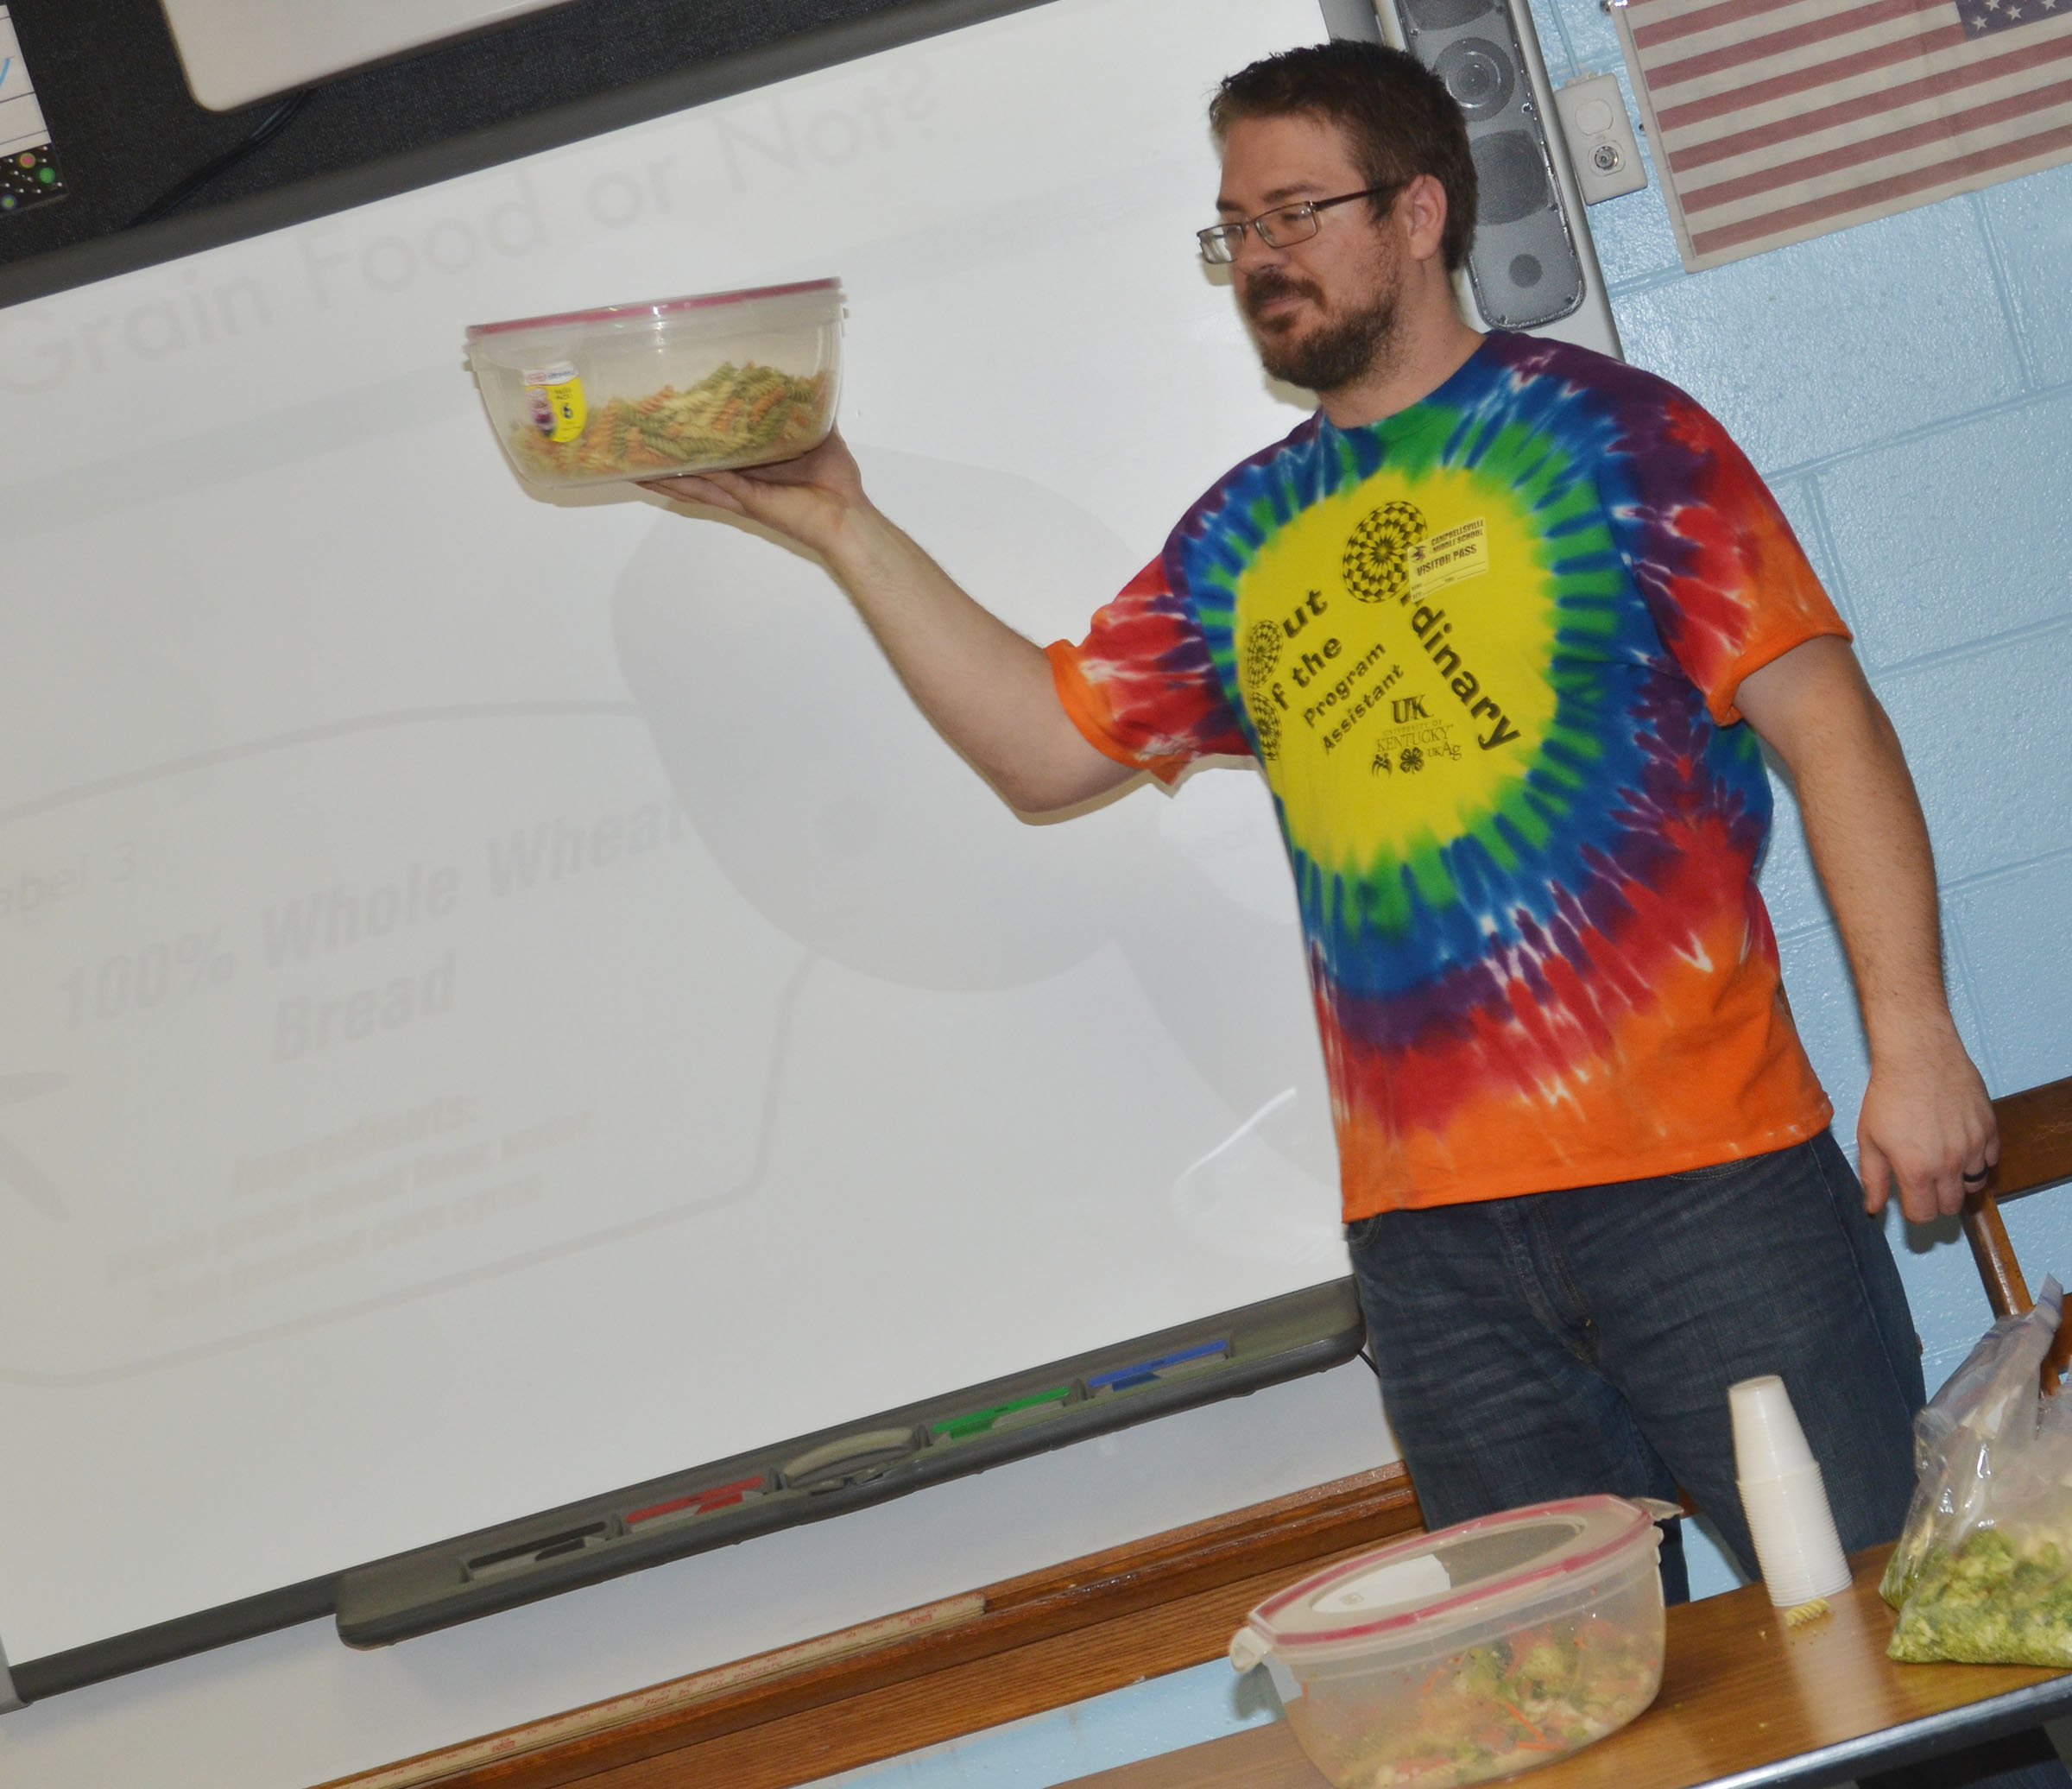 Jordan Stapp, 4-H program assistant at Taylor County Extension Office, talks to students about whole grains.